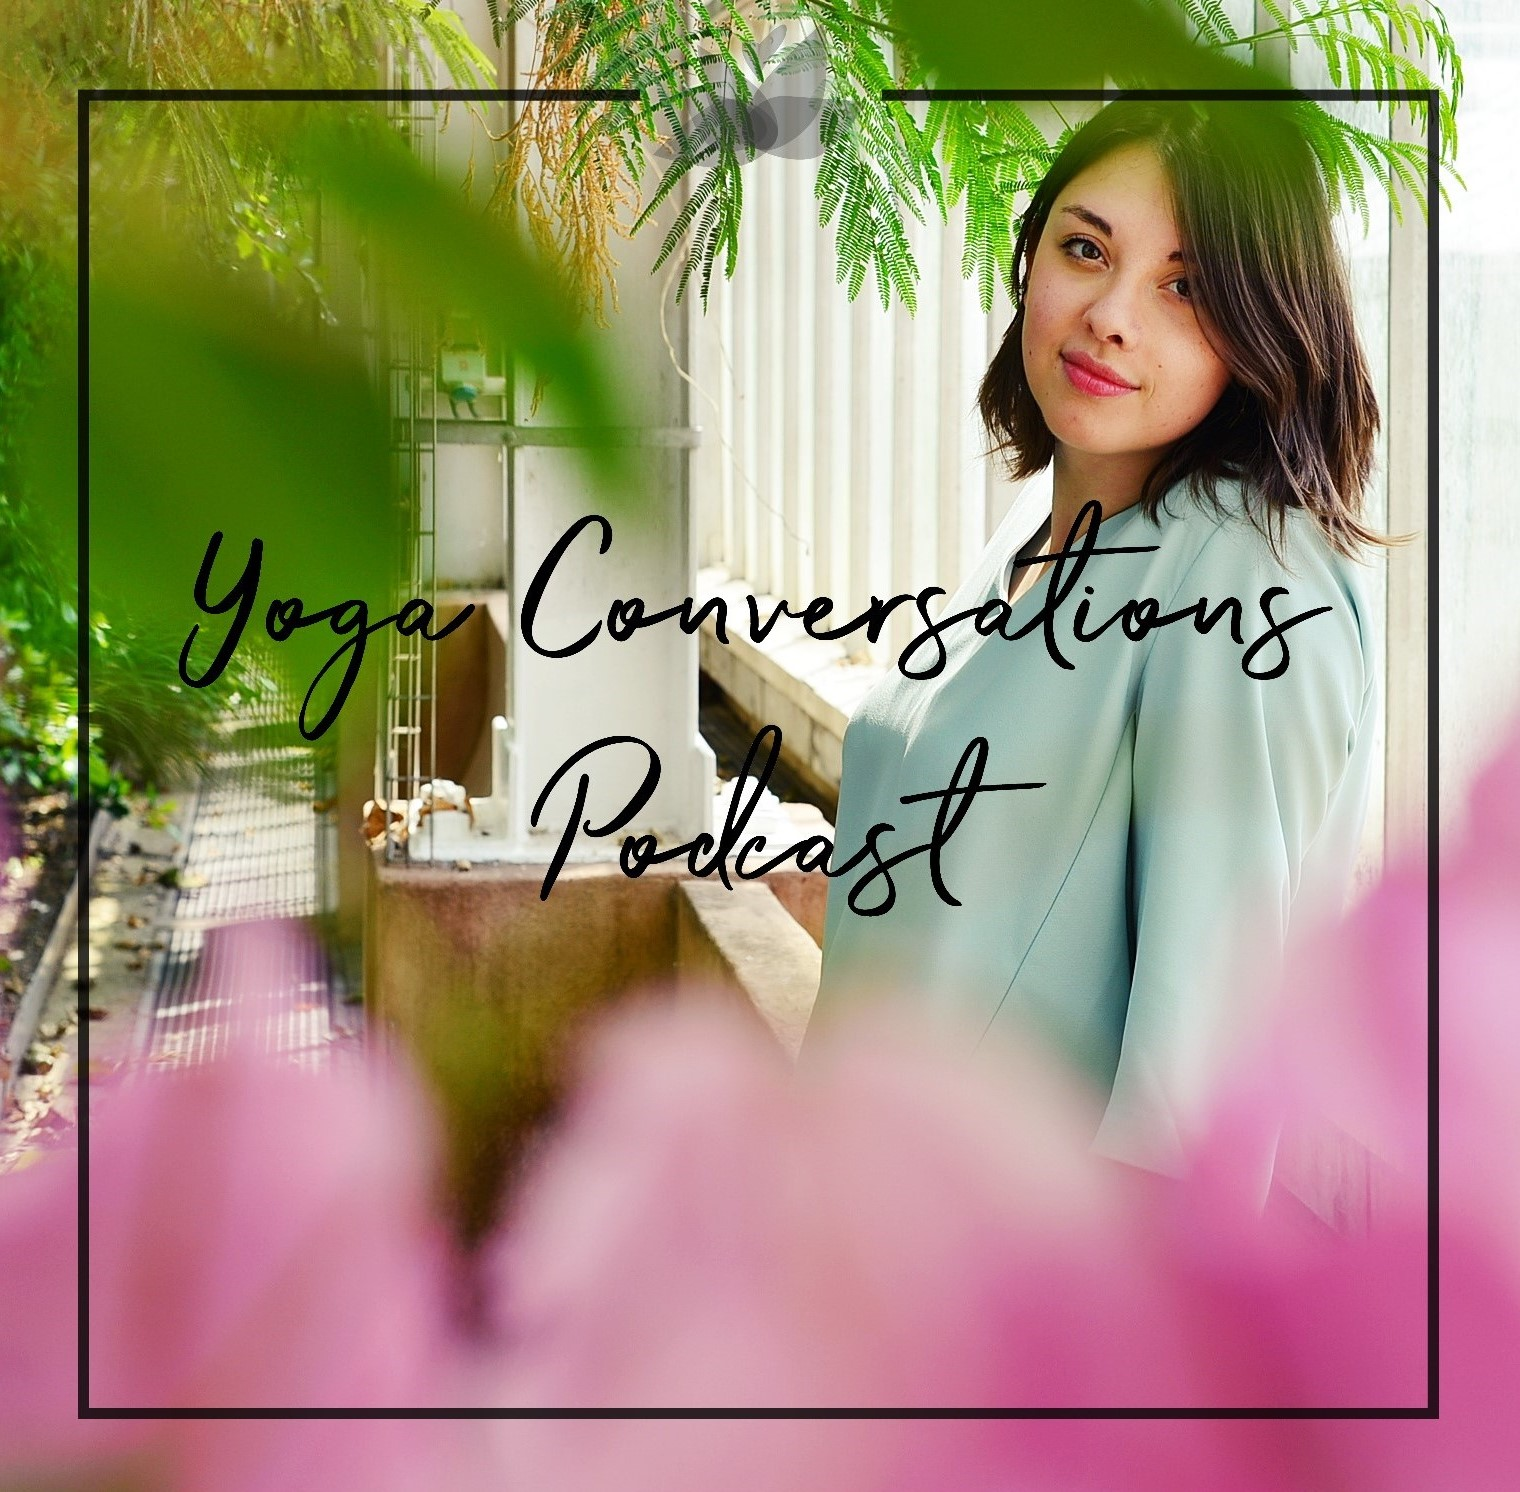 Yoga Conversations: The Podcast show image